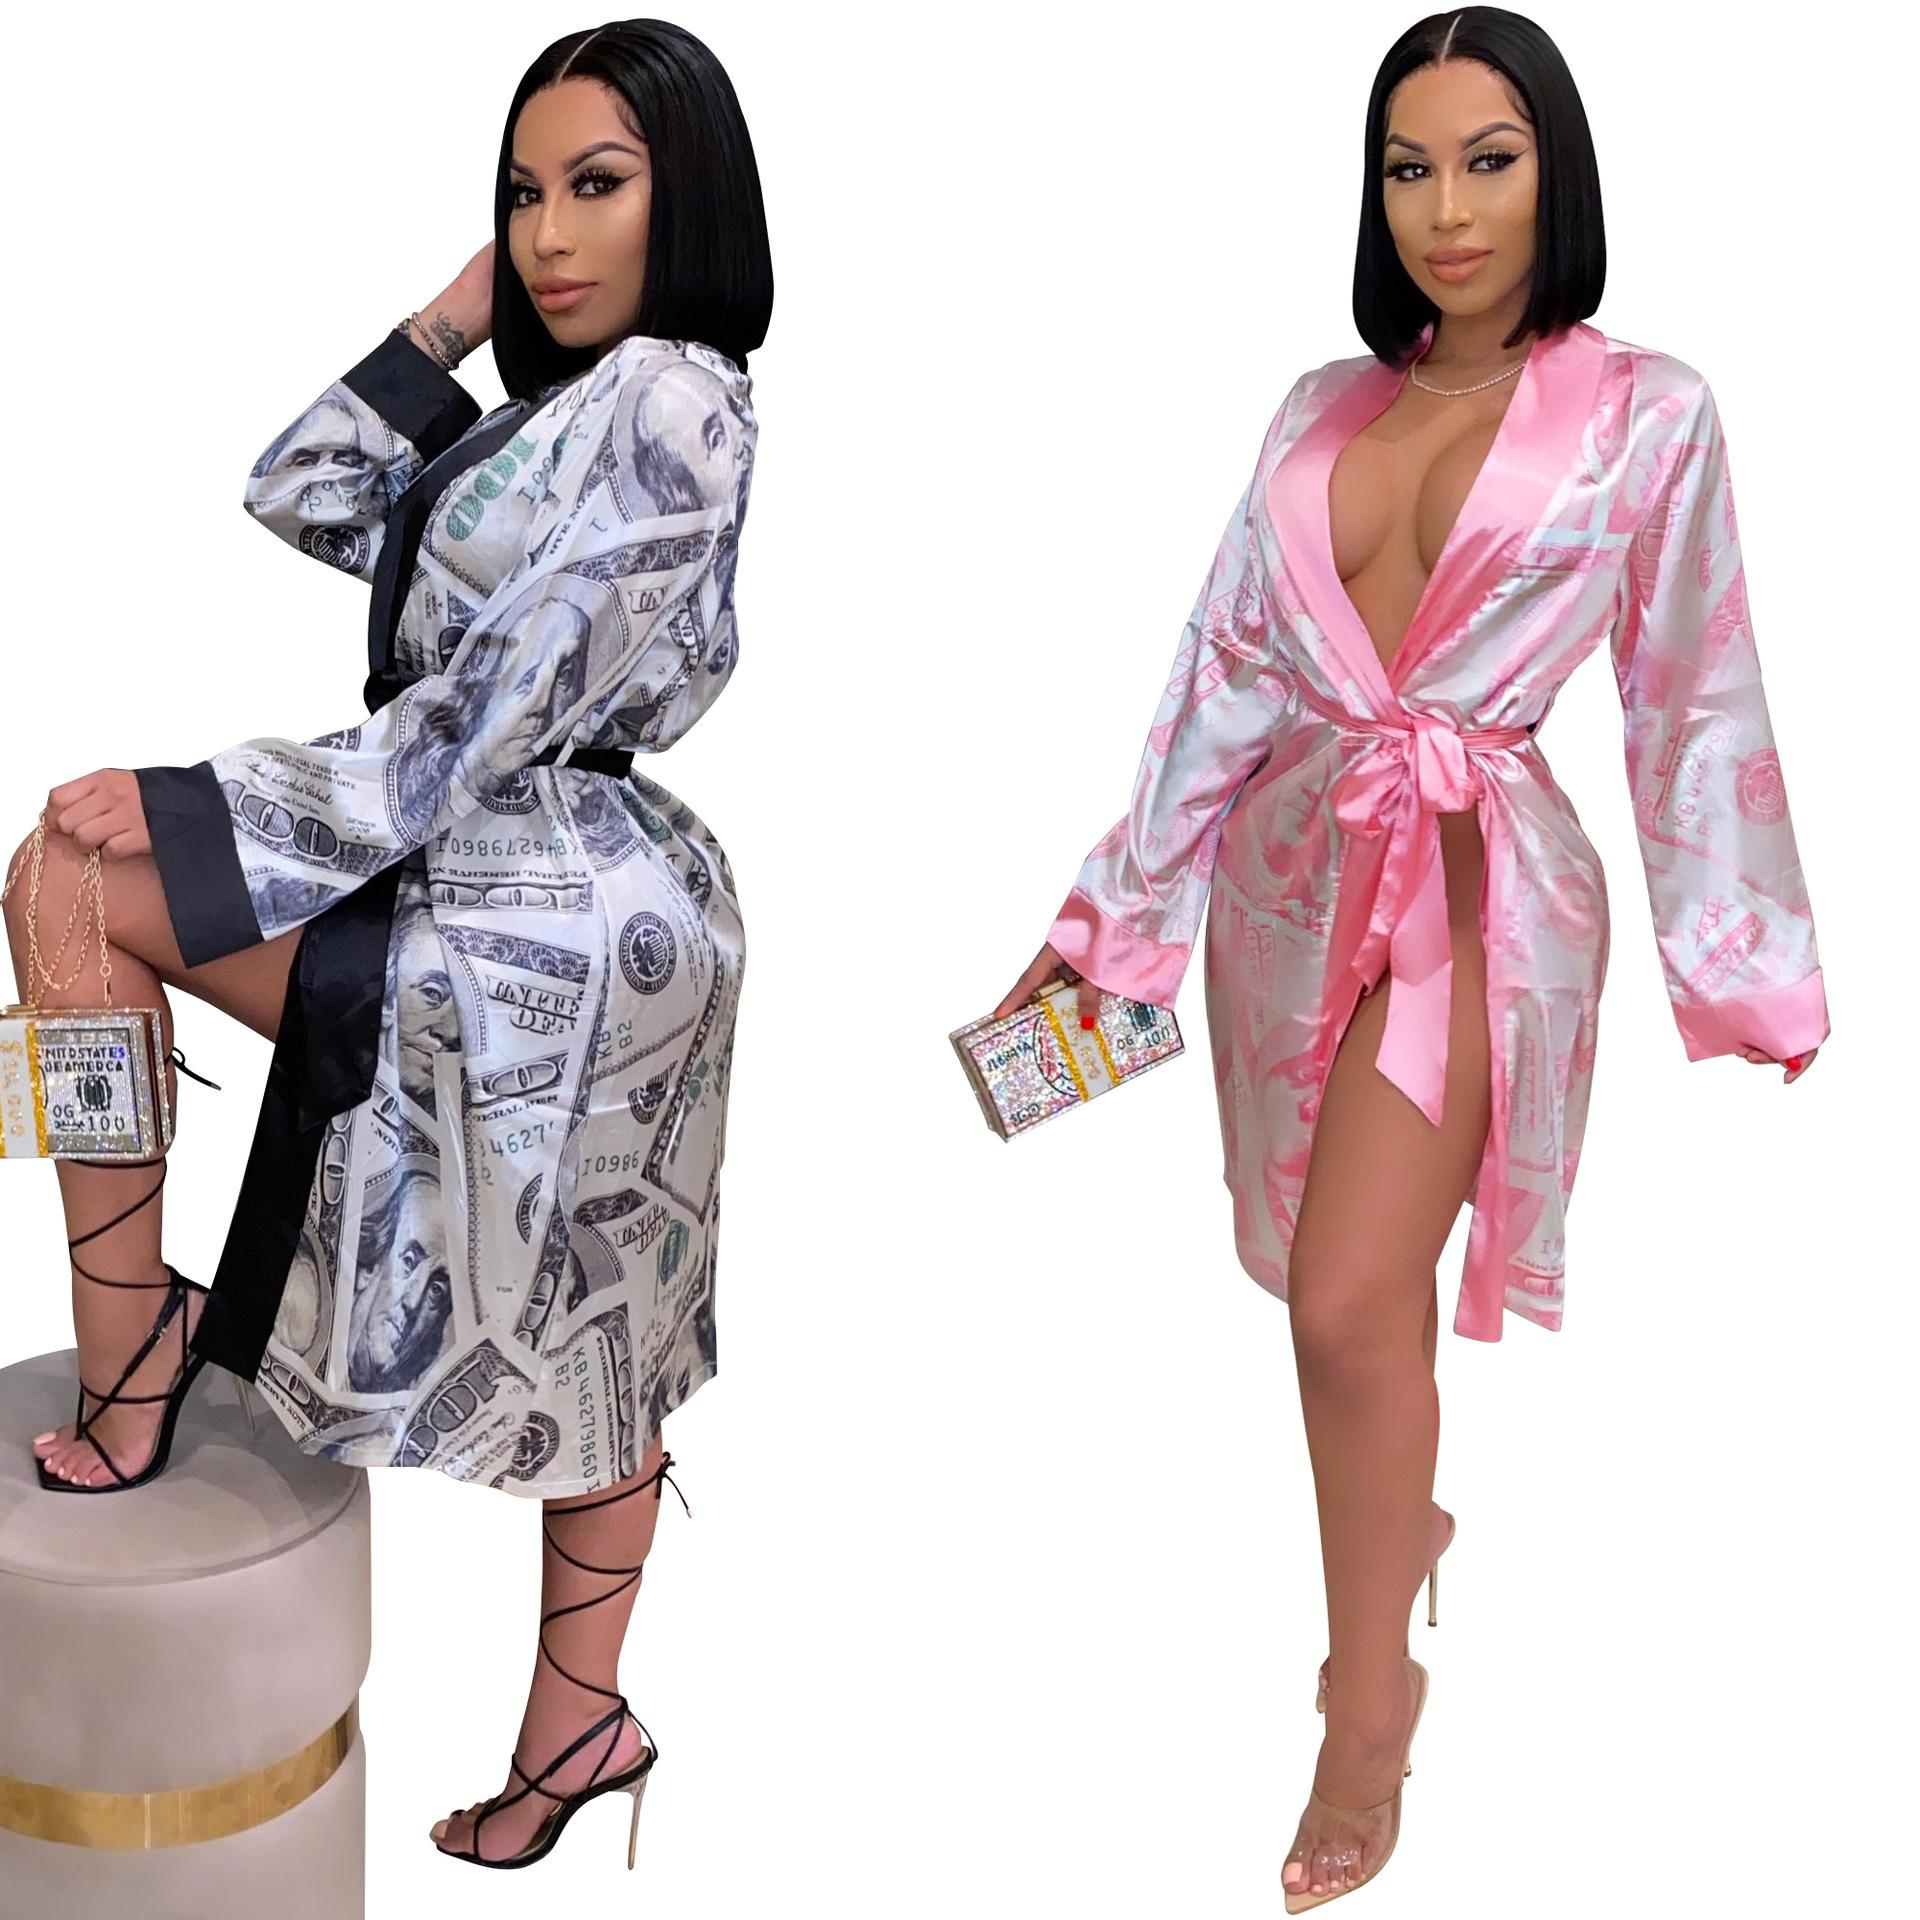 Hot lady fashion robe bathrobes pajamas dollars printed cardigan Pajamas Large Night Wear Robe Women